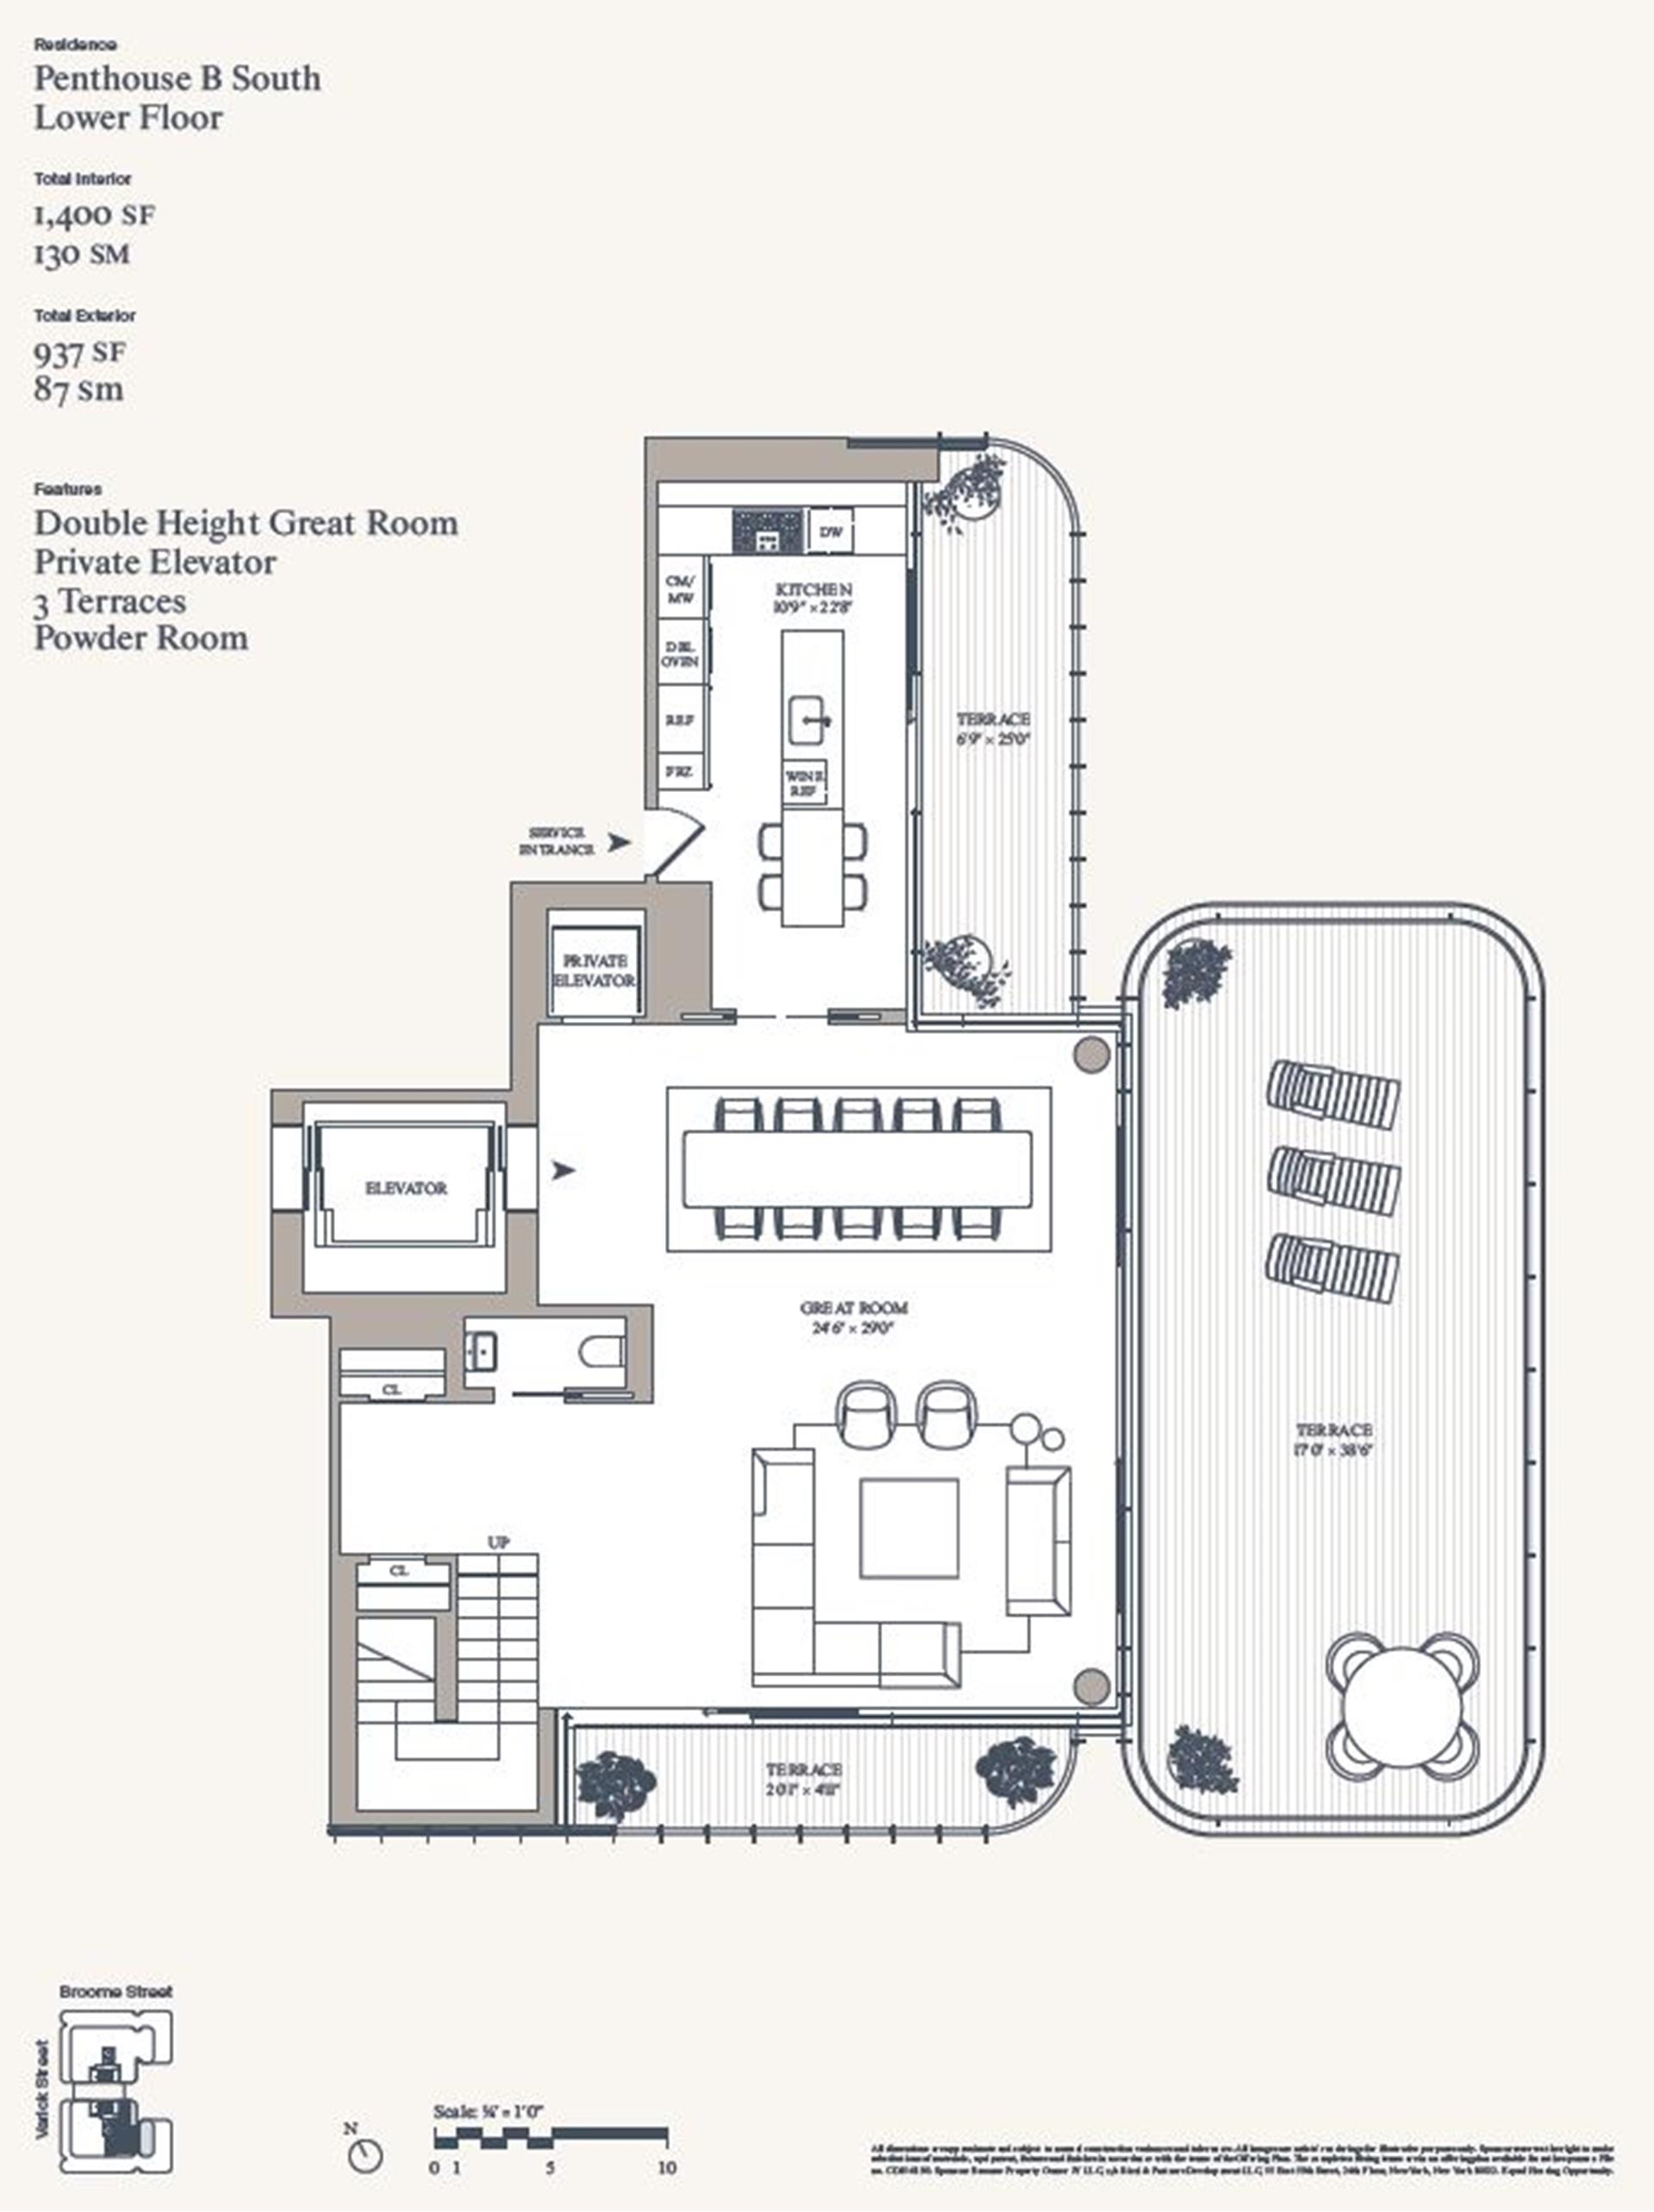 Floor plan of 565 Broome St, SPHB - SoHo - Nolita, New York